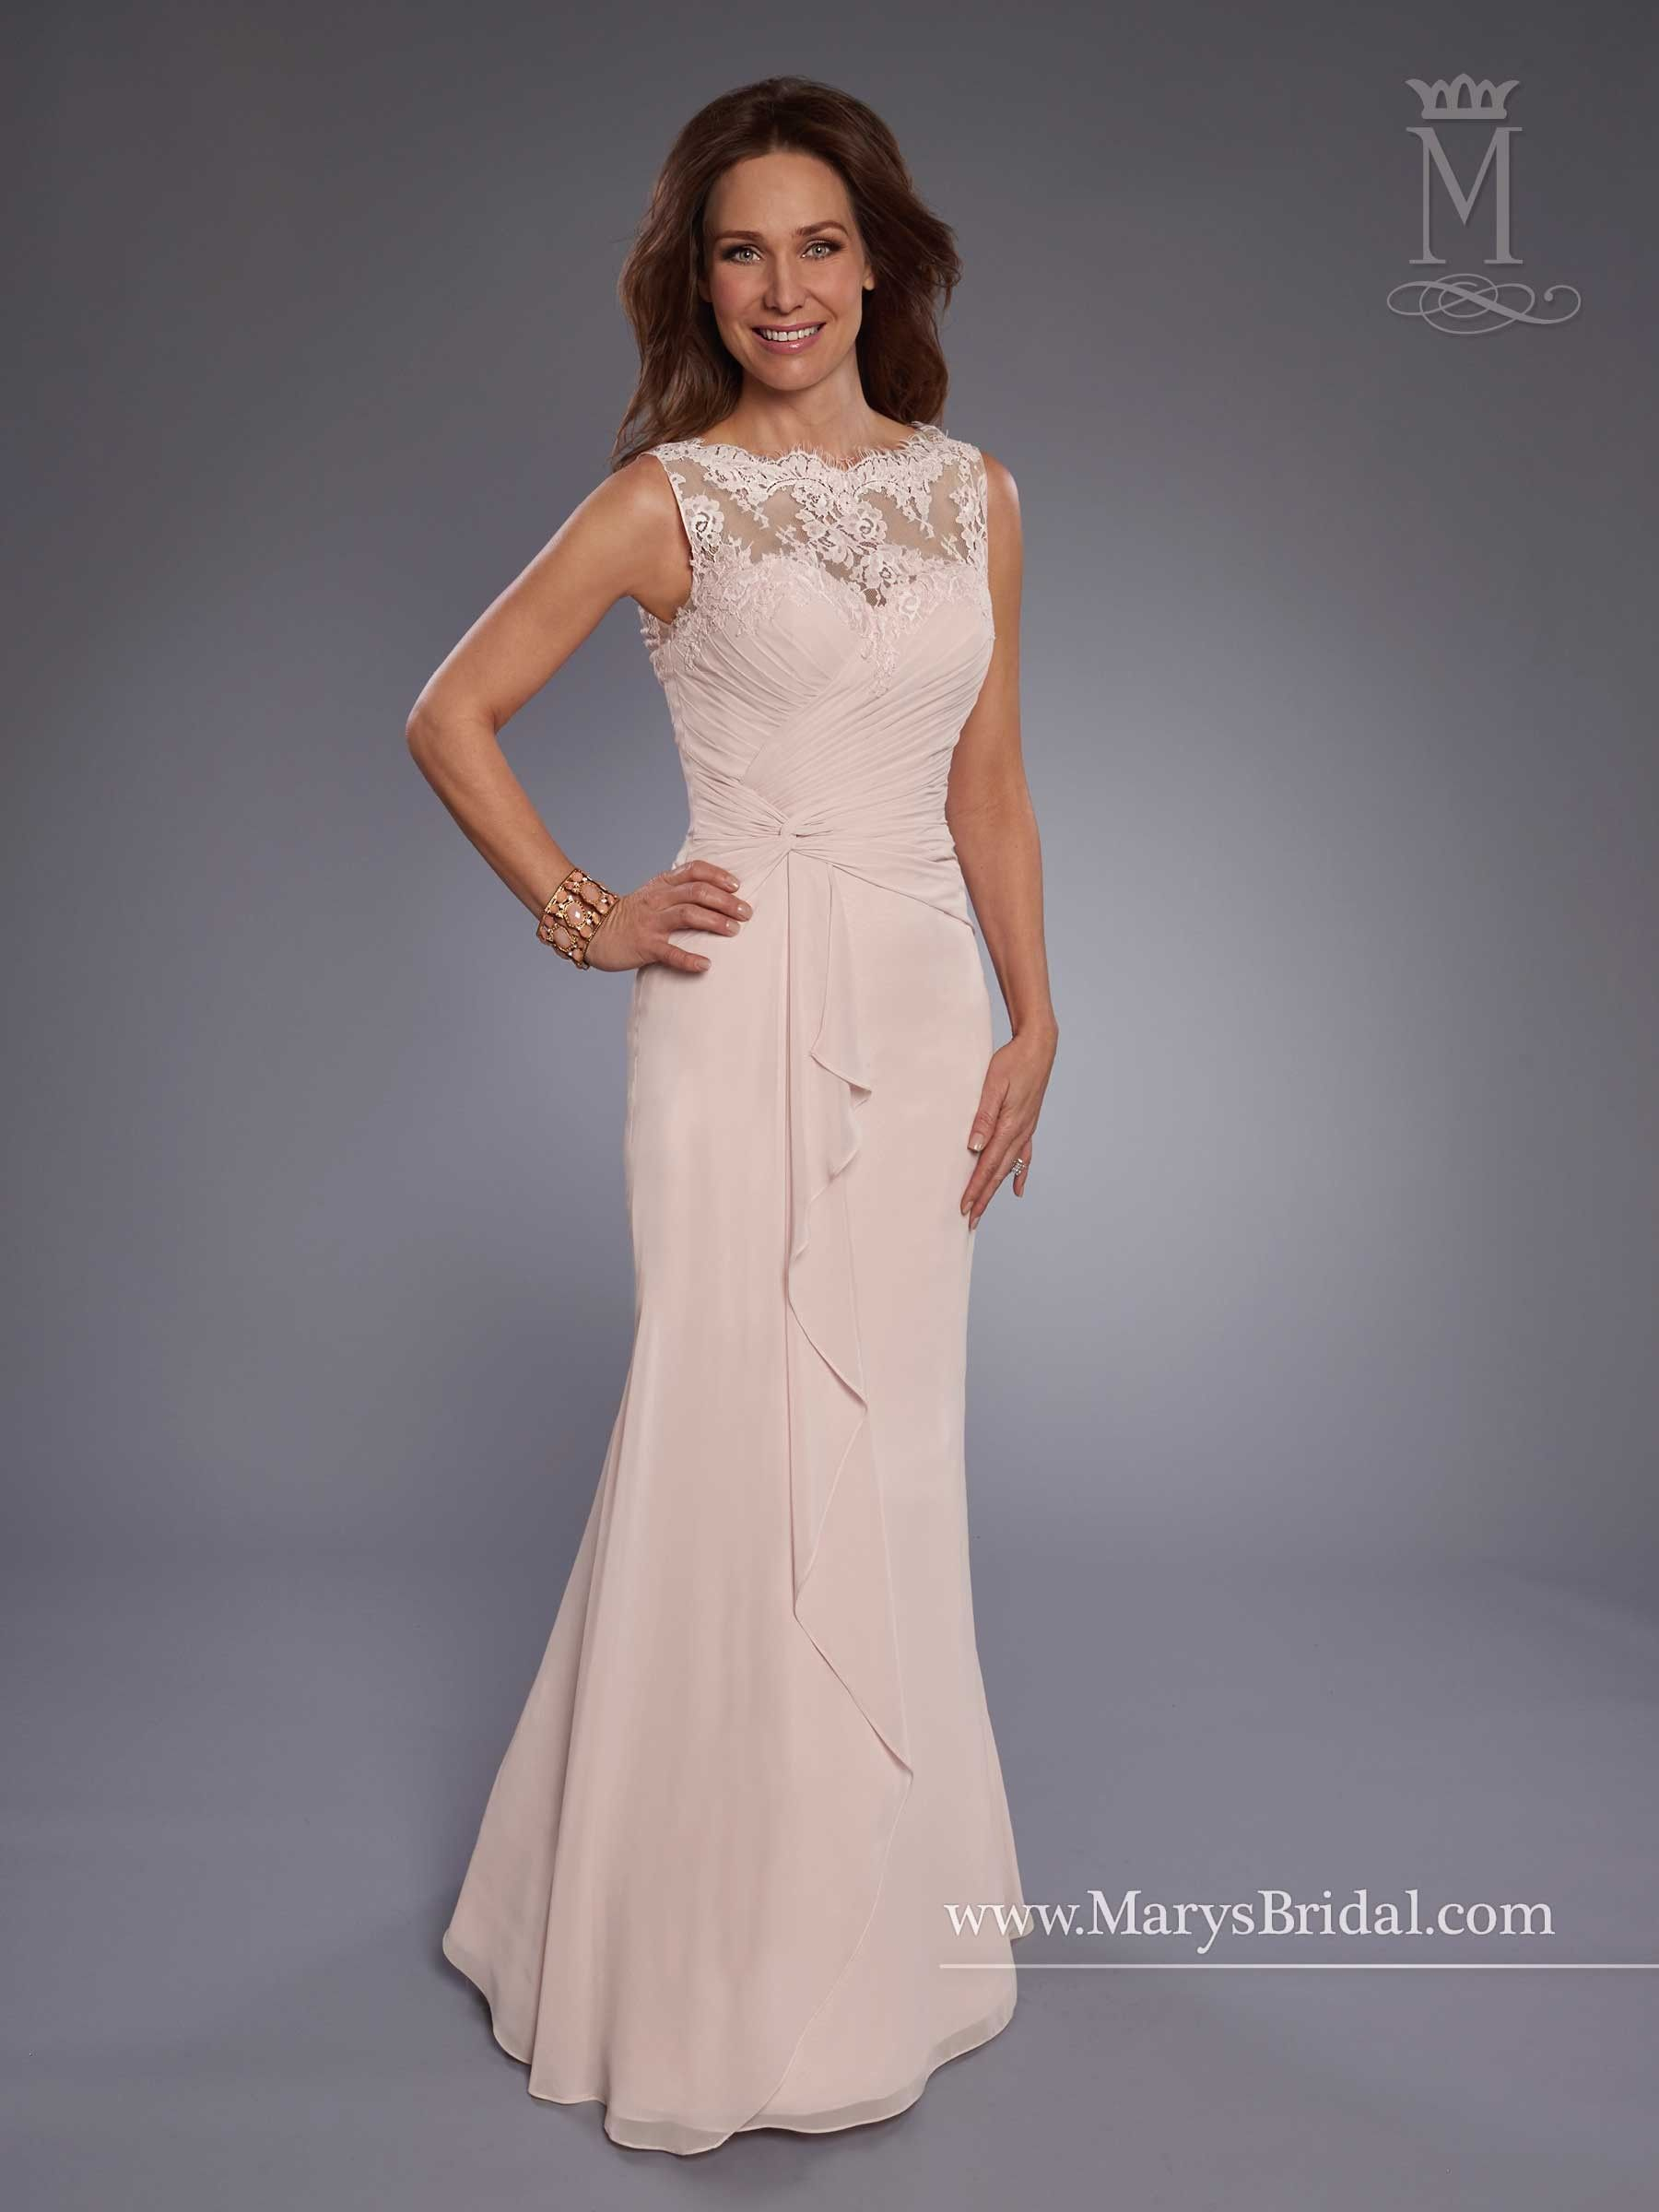 89e0d2aa7ea Marys Bridal M2742 Sleeveless Mother of the Bride Gown